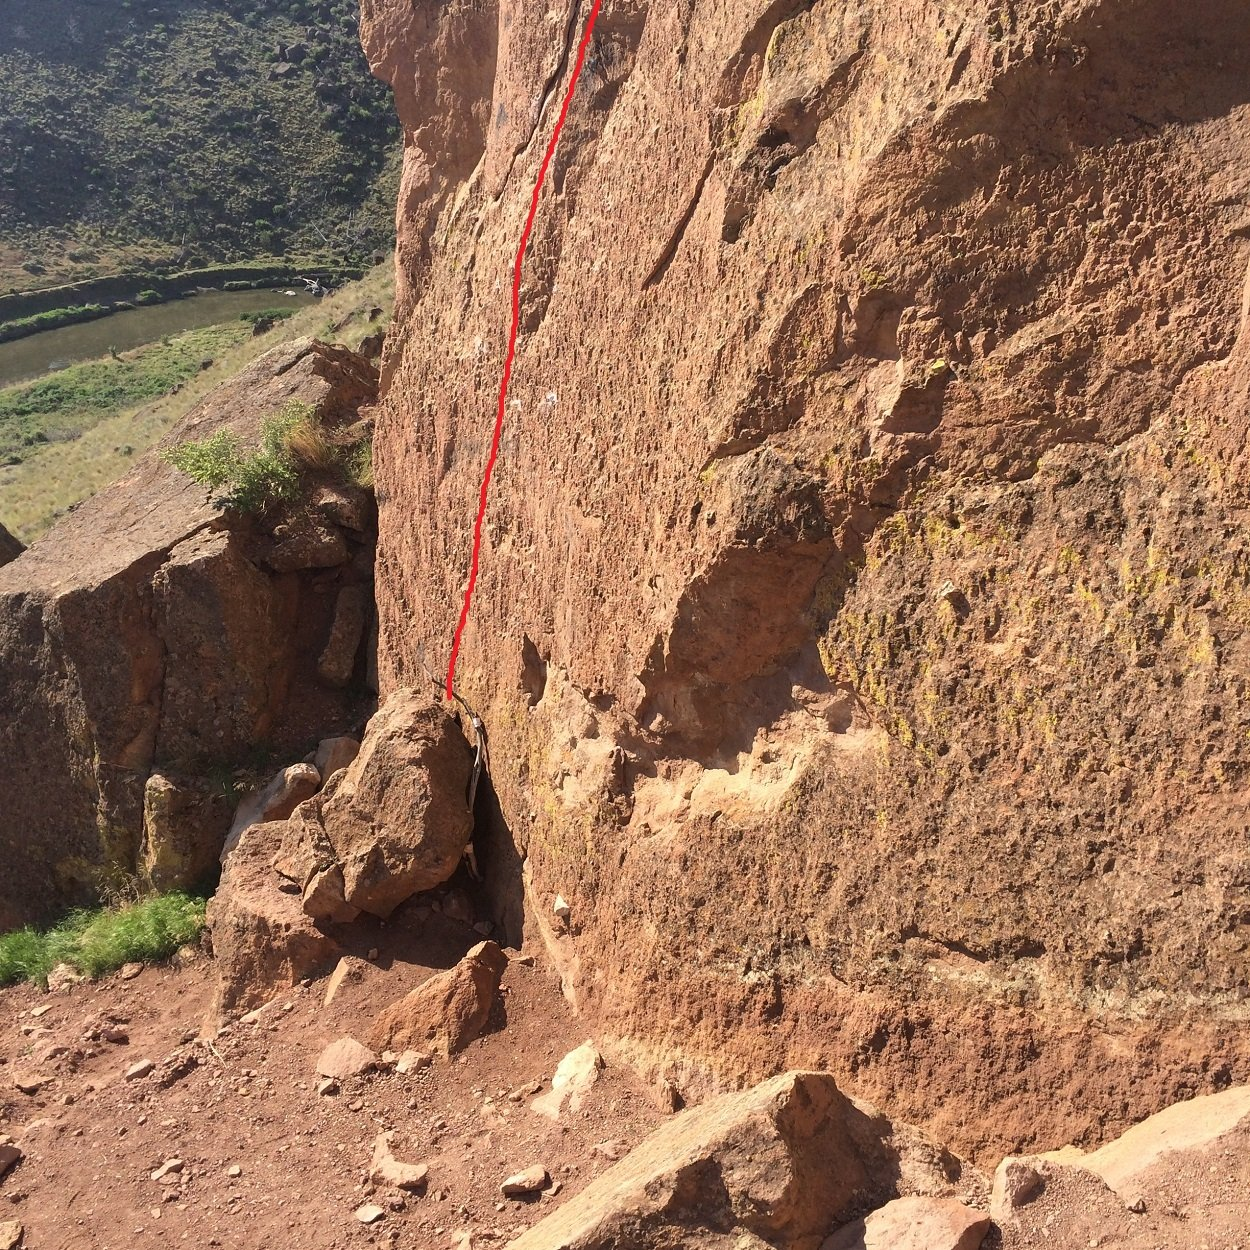 Let's Face It - Smith Rock Climbing